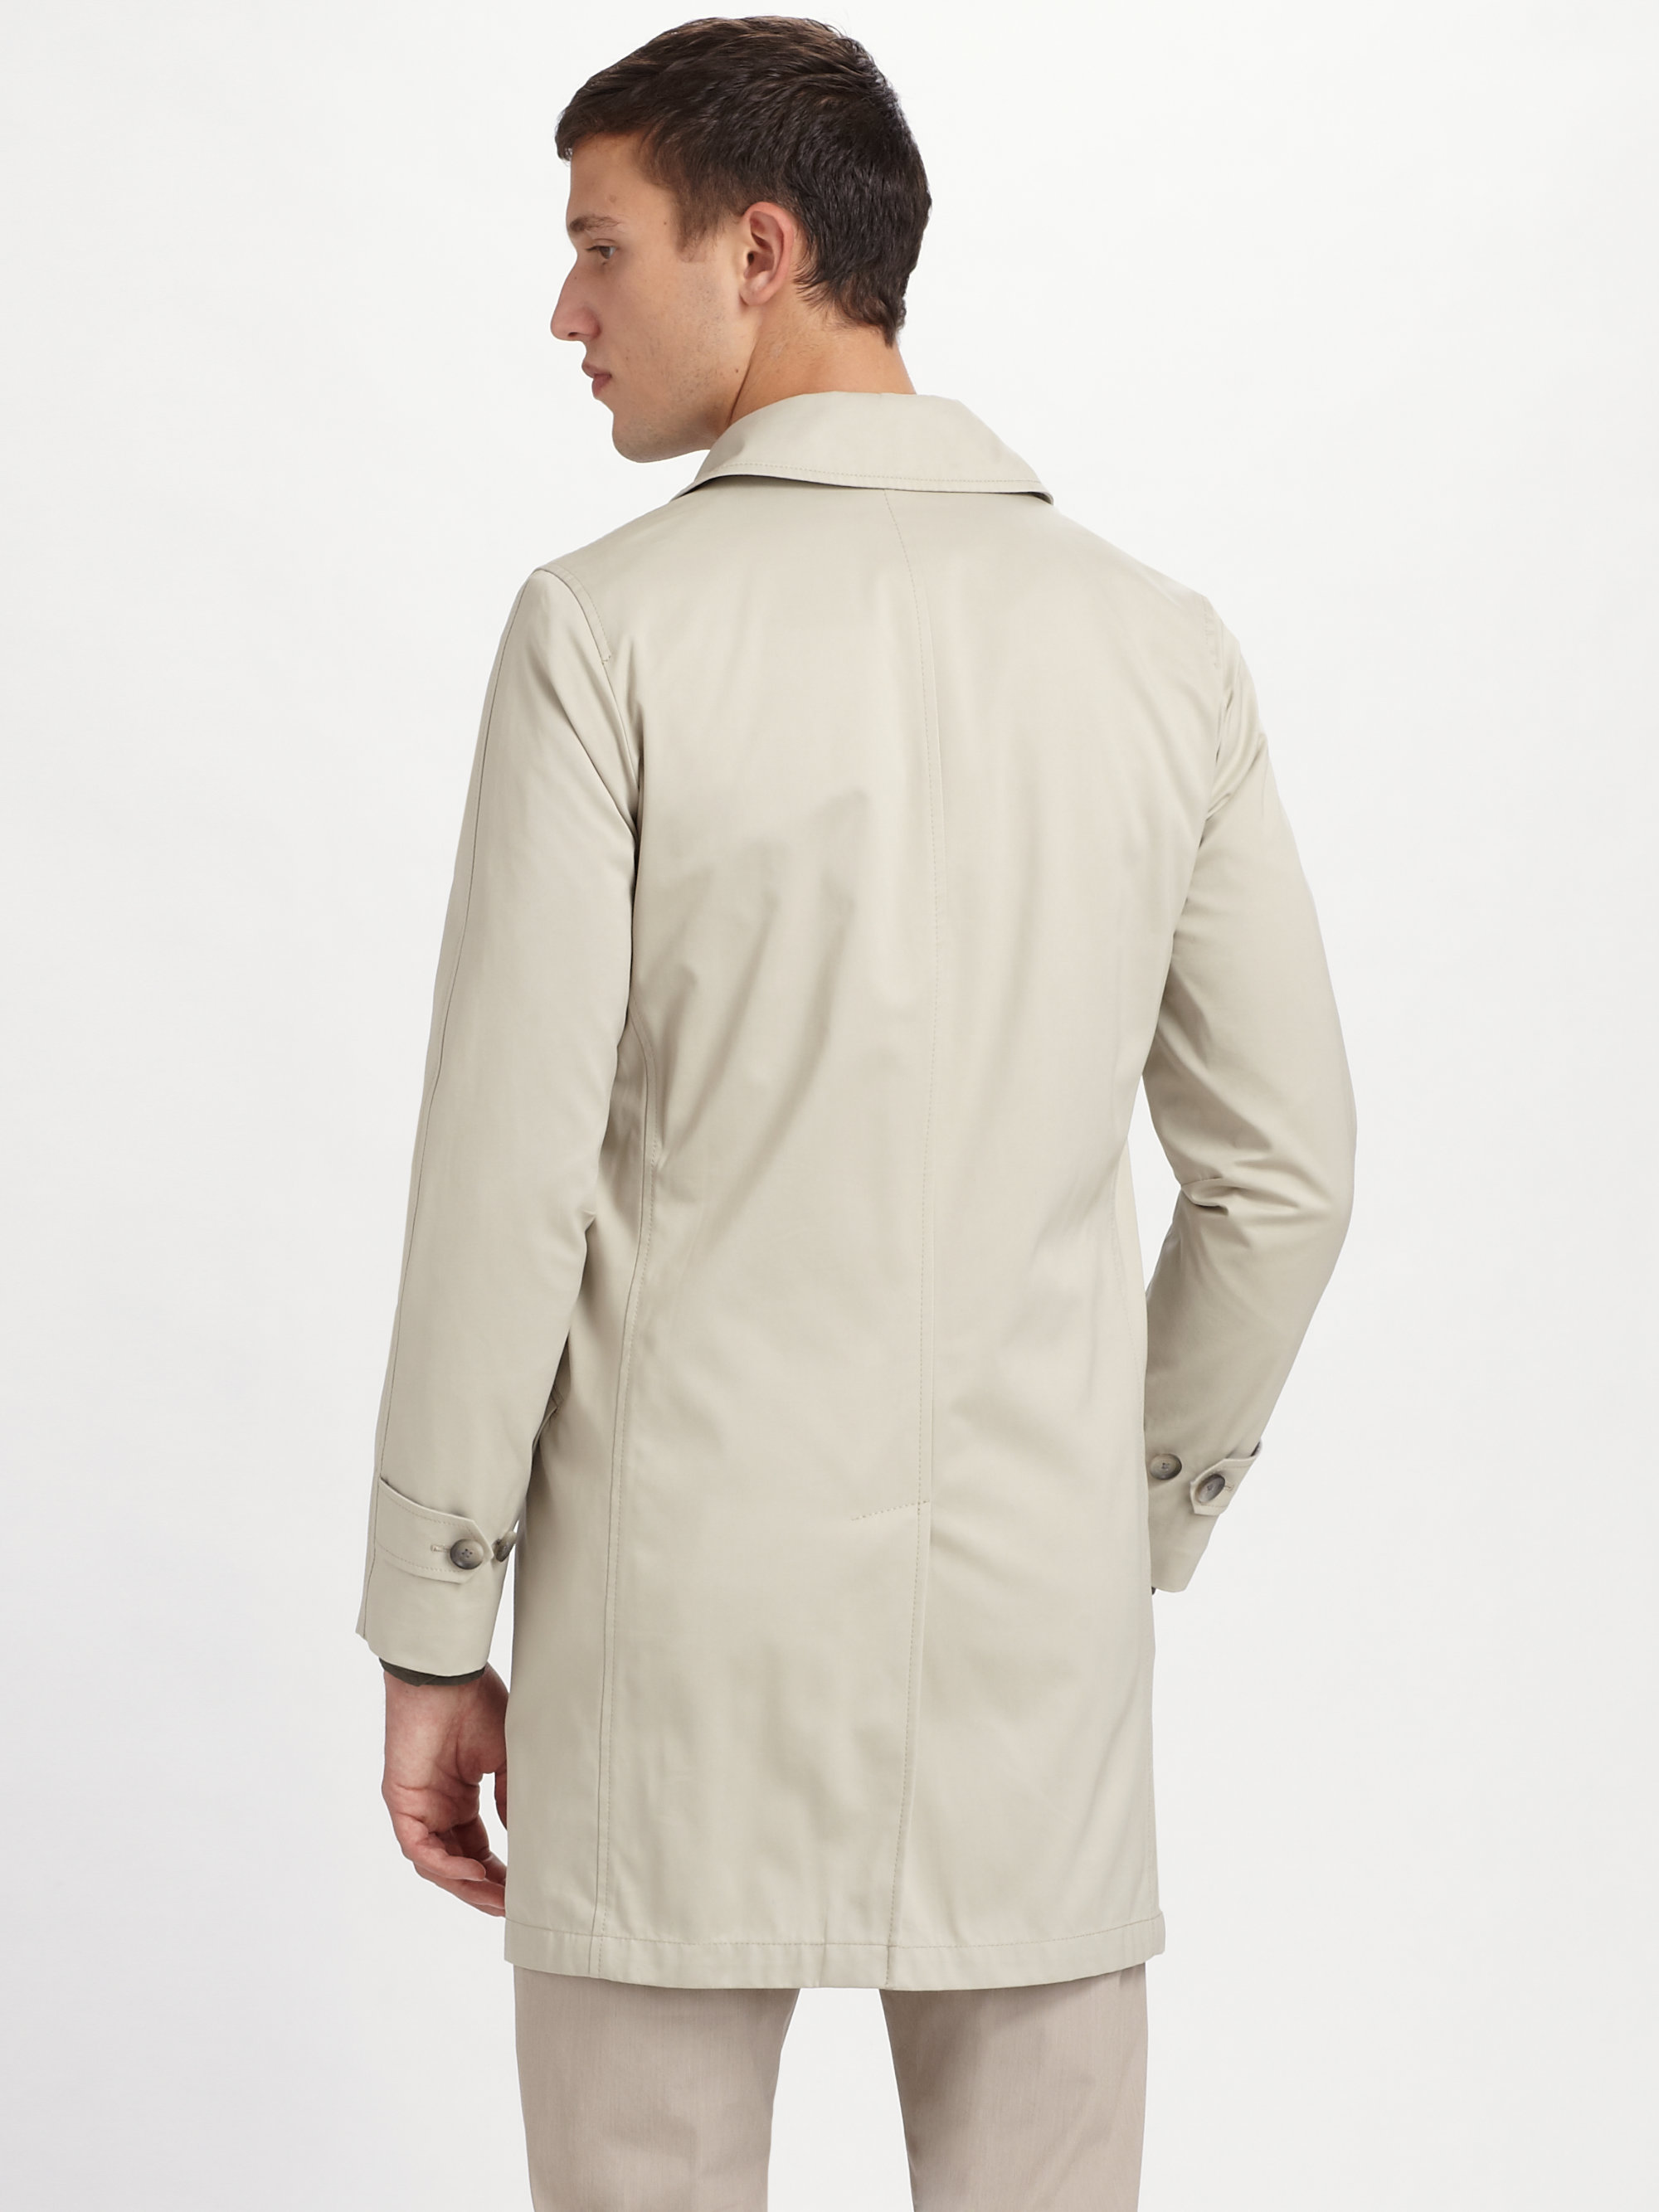 Theory Decker Sturdy Car Coat in Natural for Men | Lyst